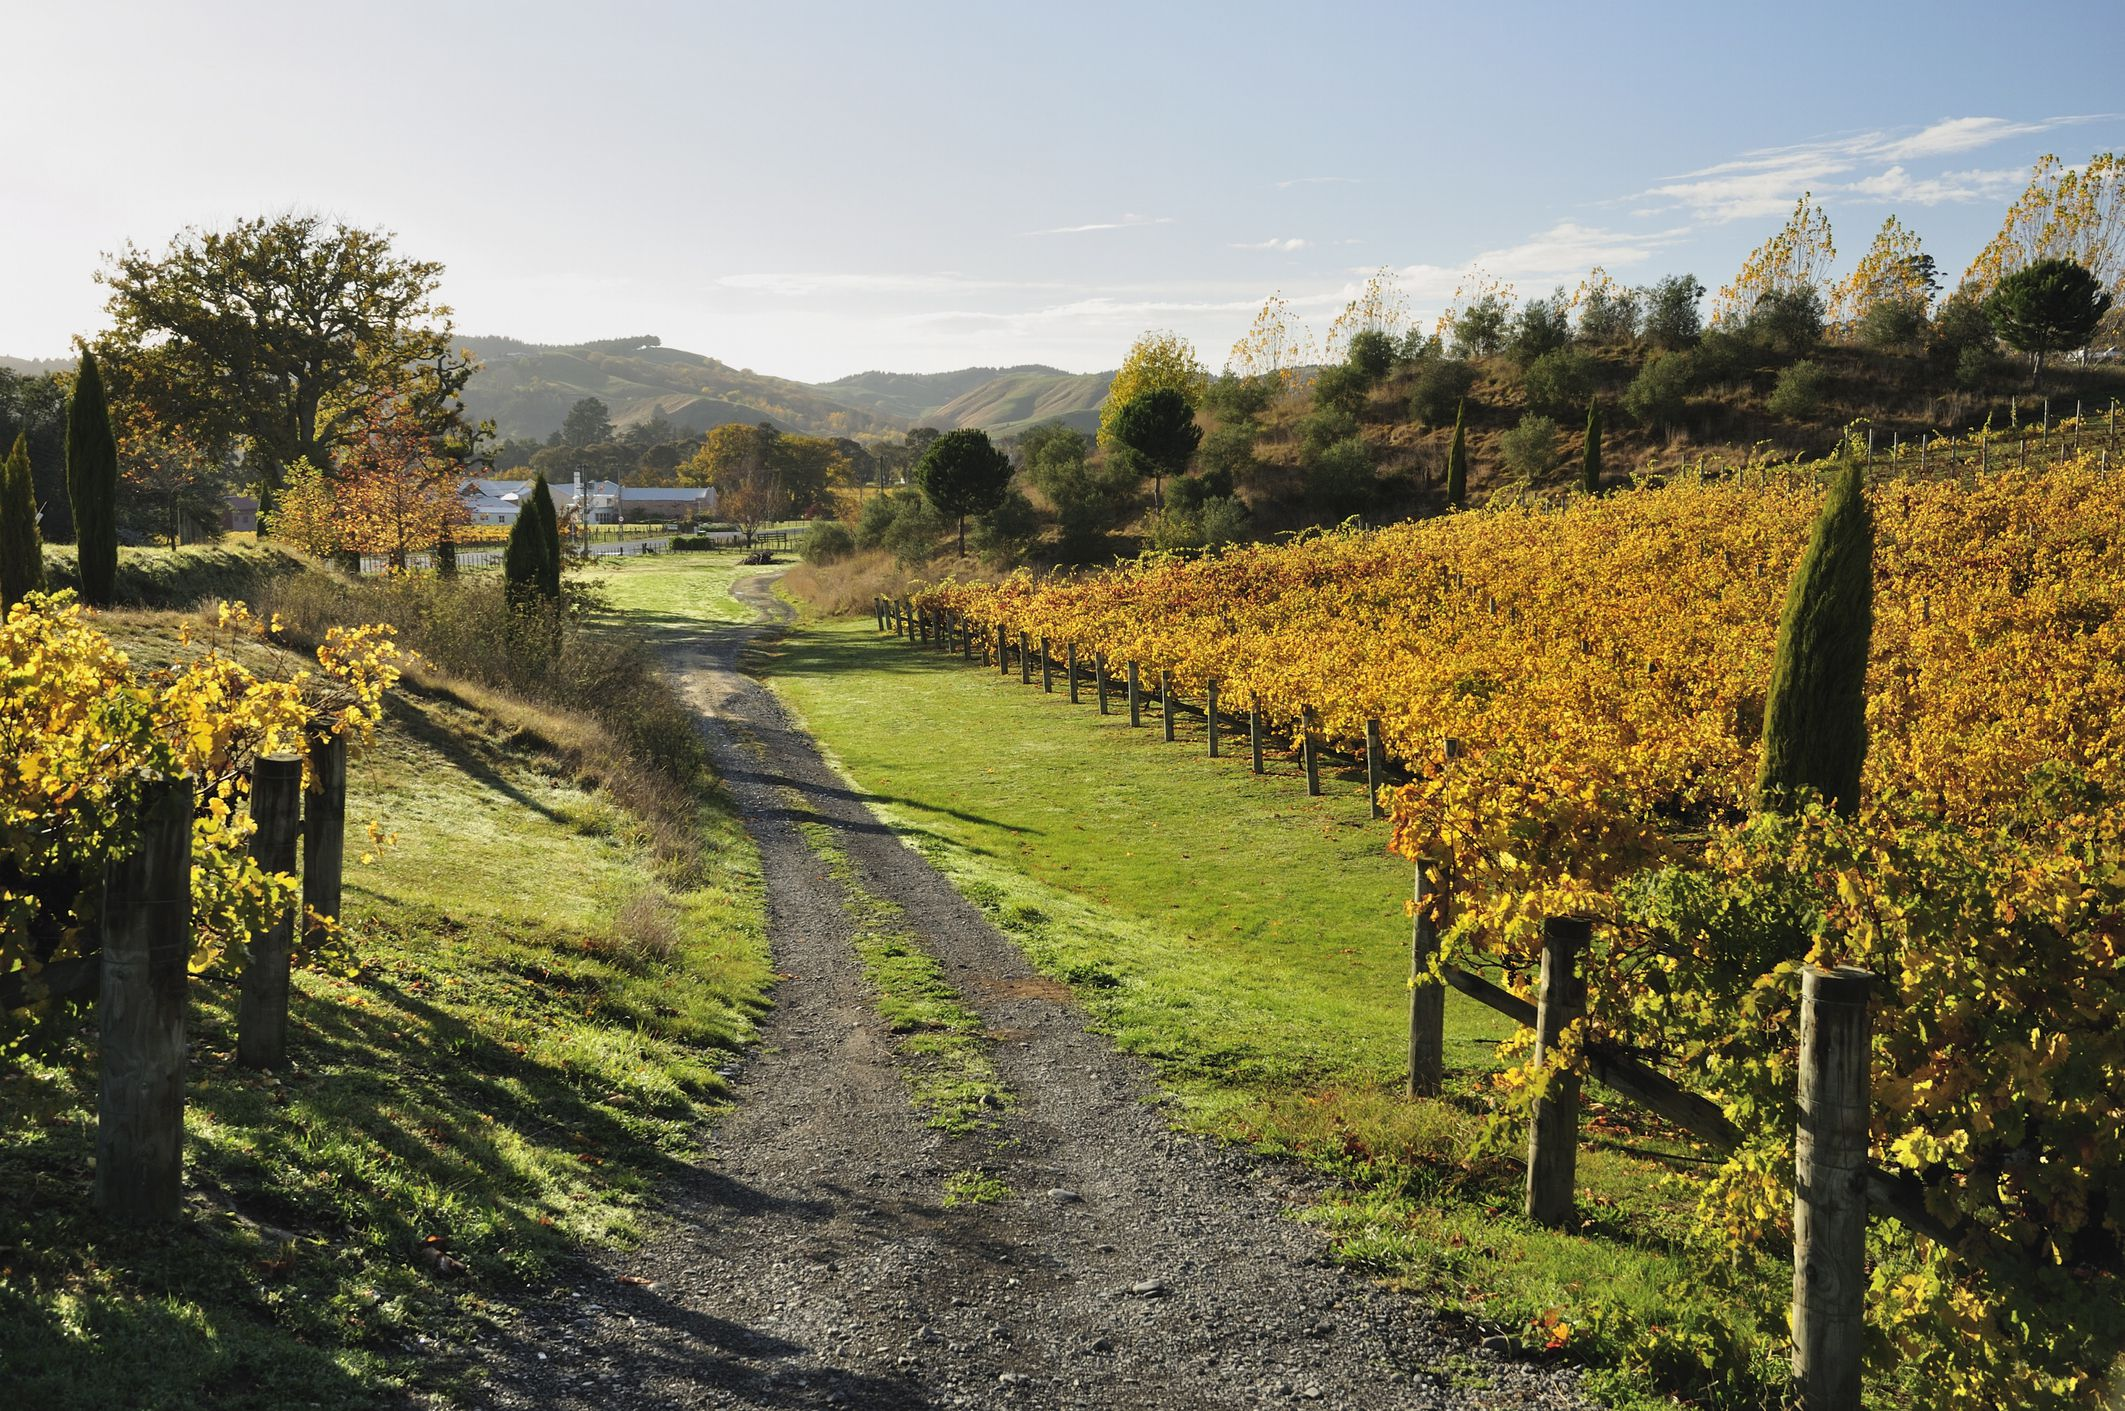 Vineyard, Havelock North, Hawke's Bay, North Island, New Zealand, Pacific